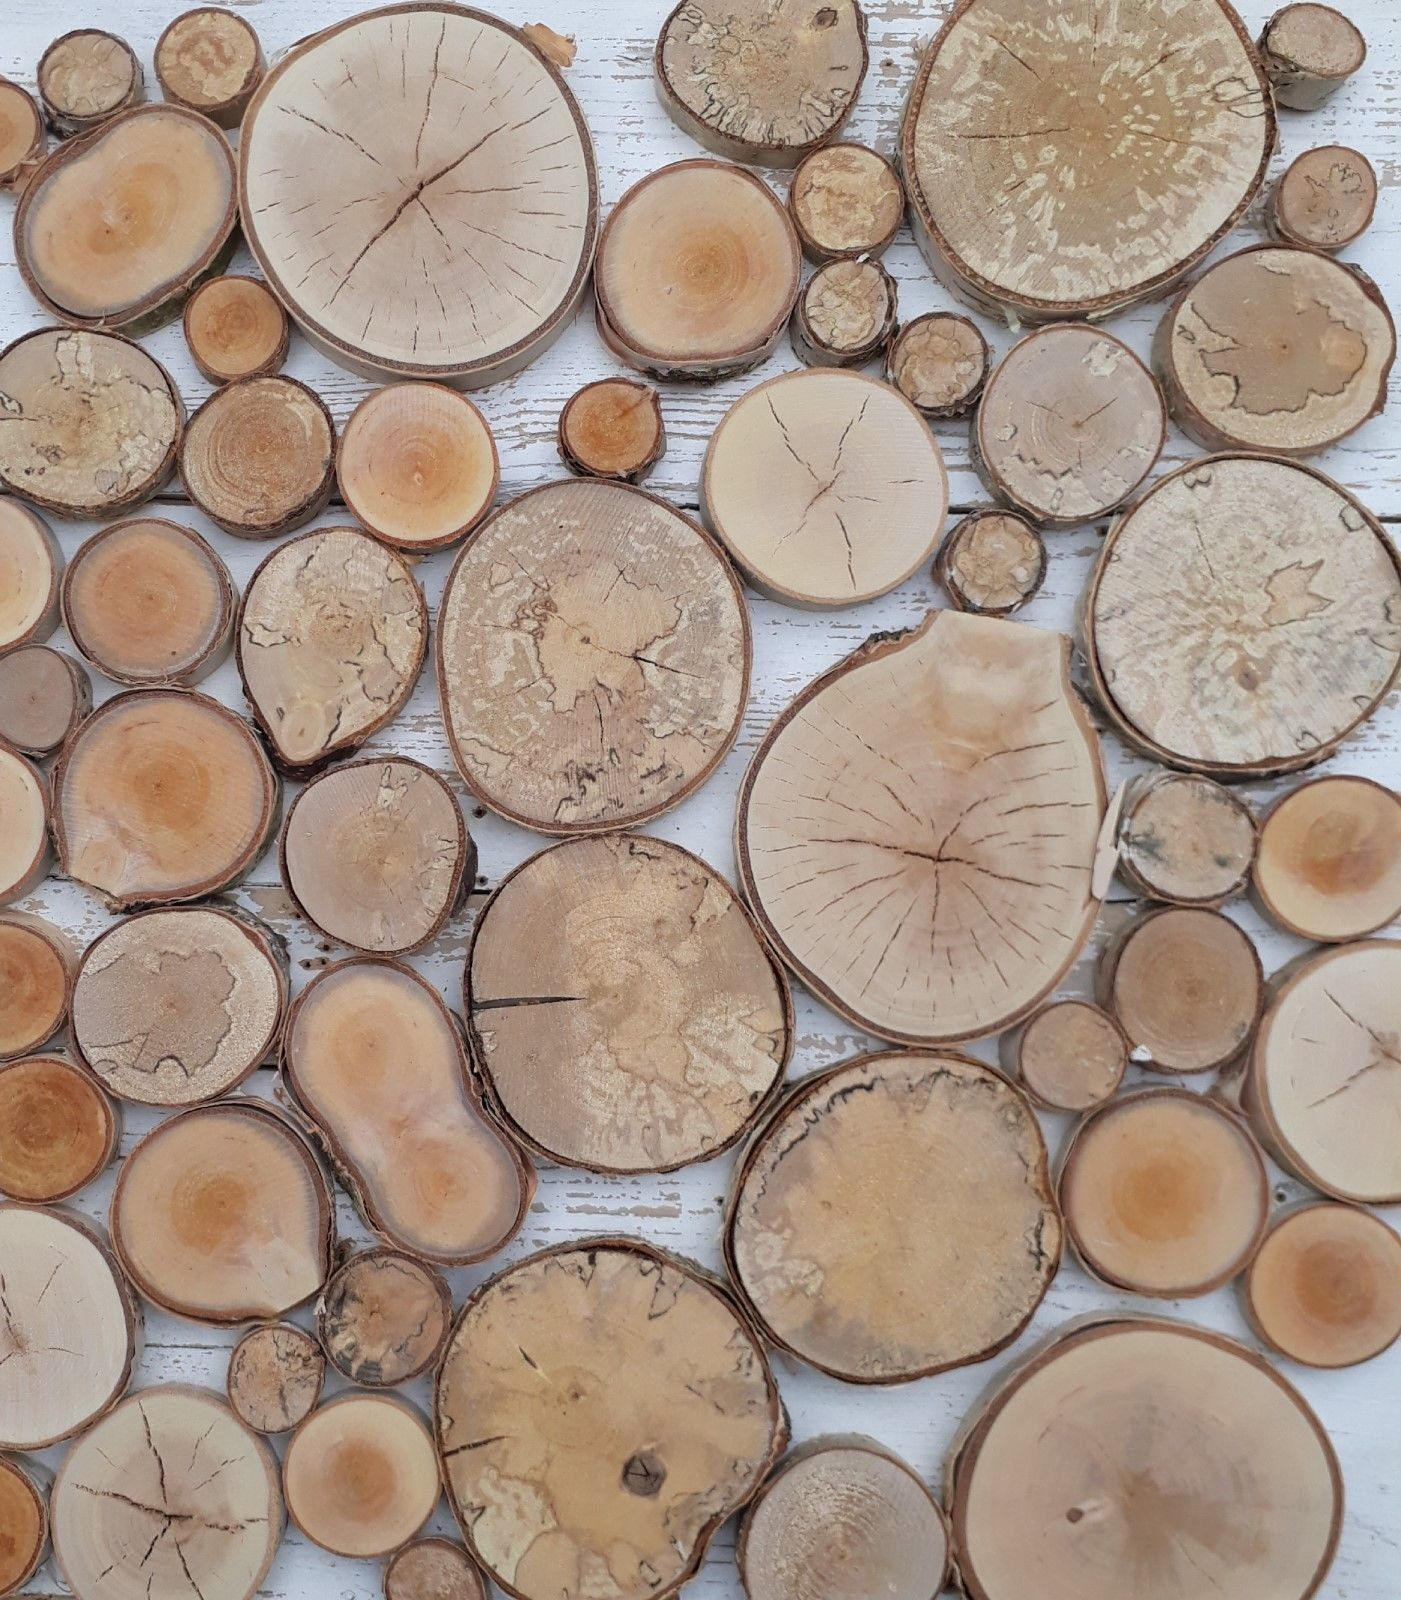 1 60pcs 2 10cm 0 8 4 Natural Birch Wood Tree Slices Rustic Wedding Table Decor Log Coasters Wooden Name Cards Pyrography Crafts And Art